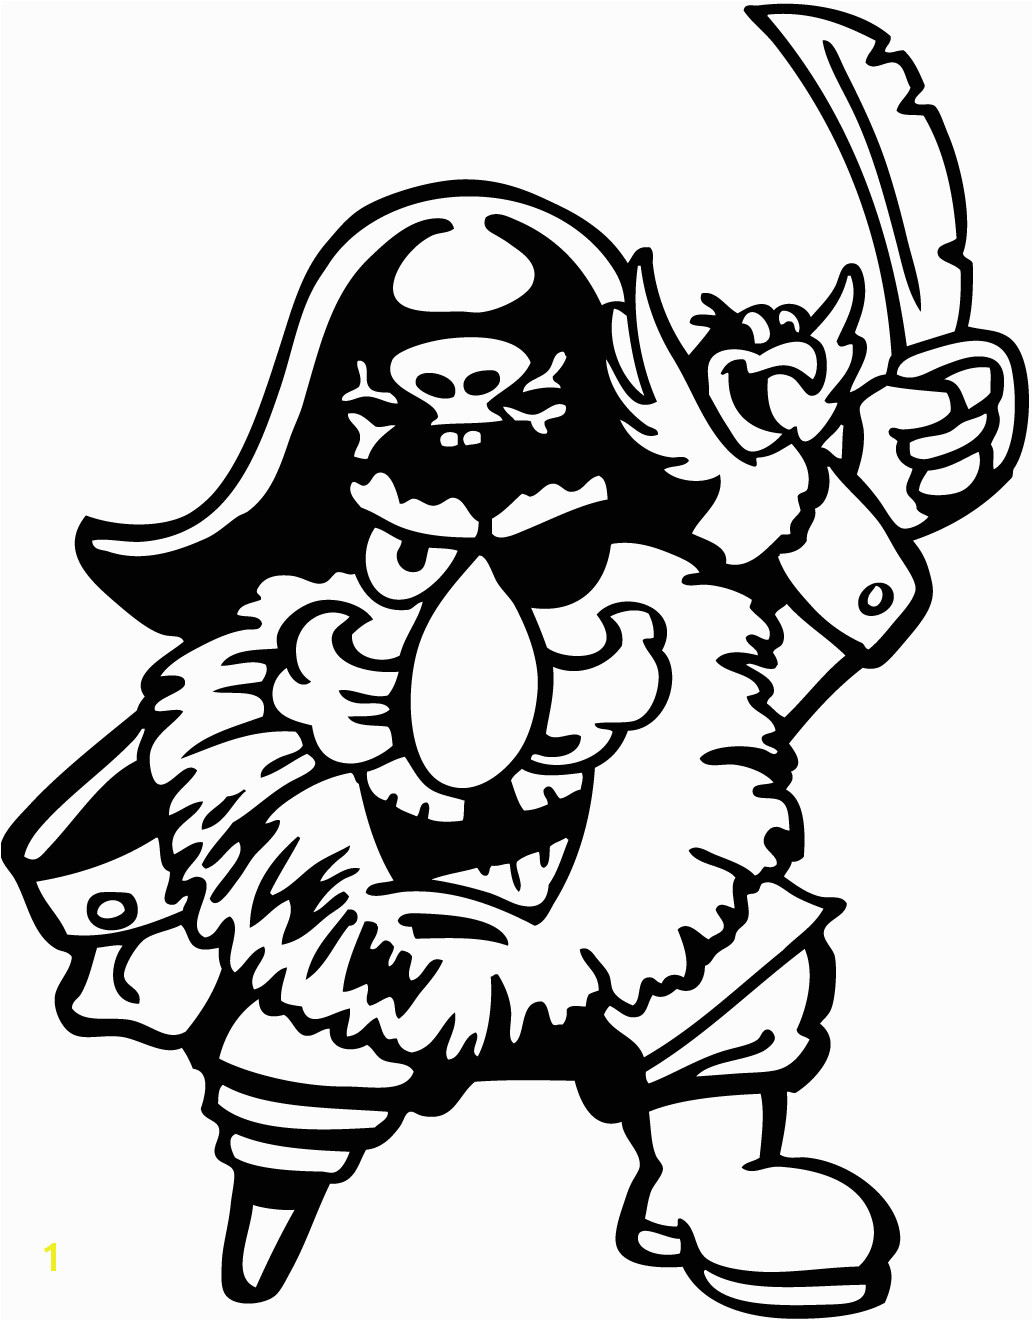 youth pirate 1033—1321 Pirate Talk Pirate Coloring Pages Pirate